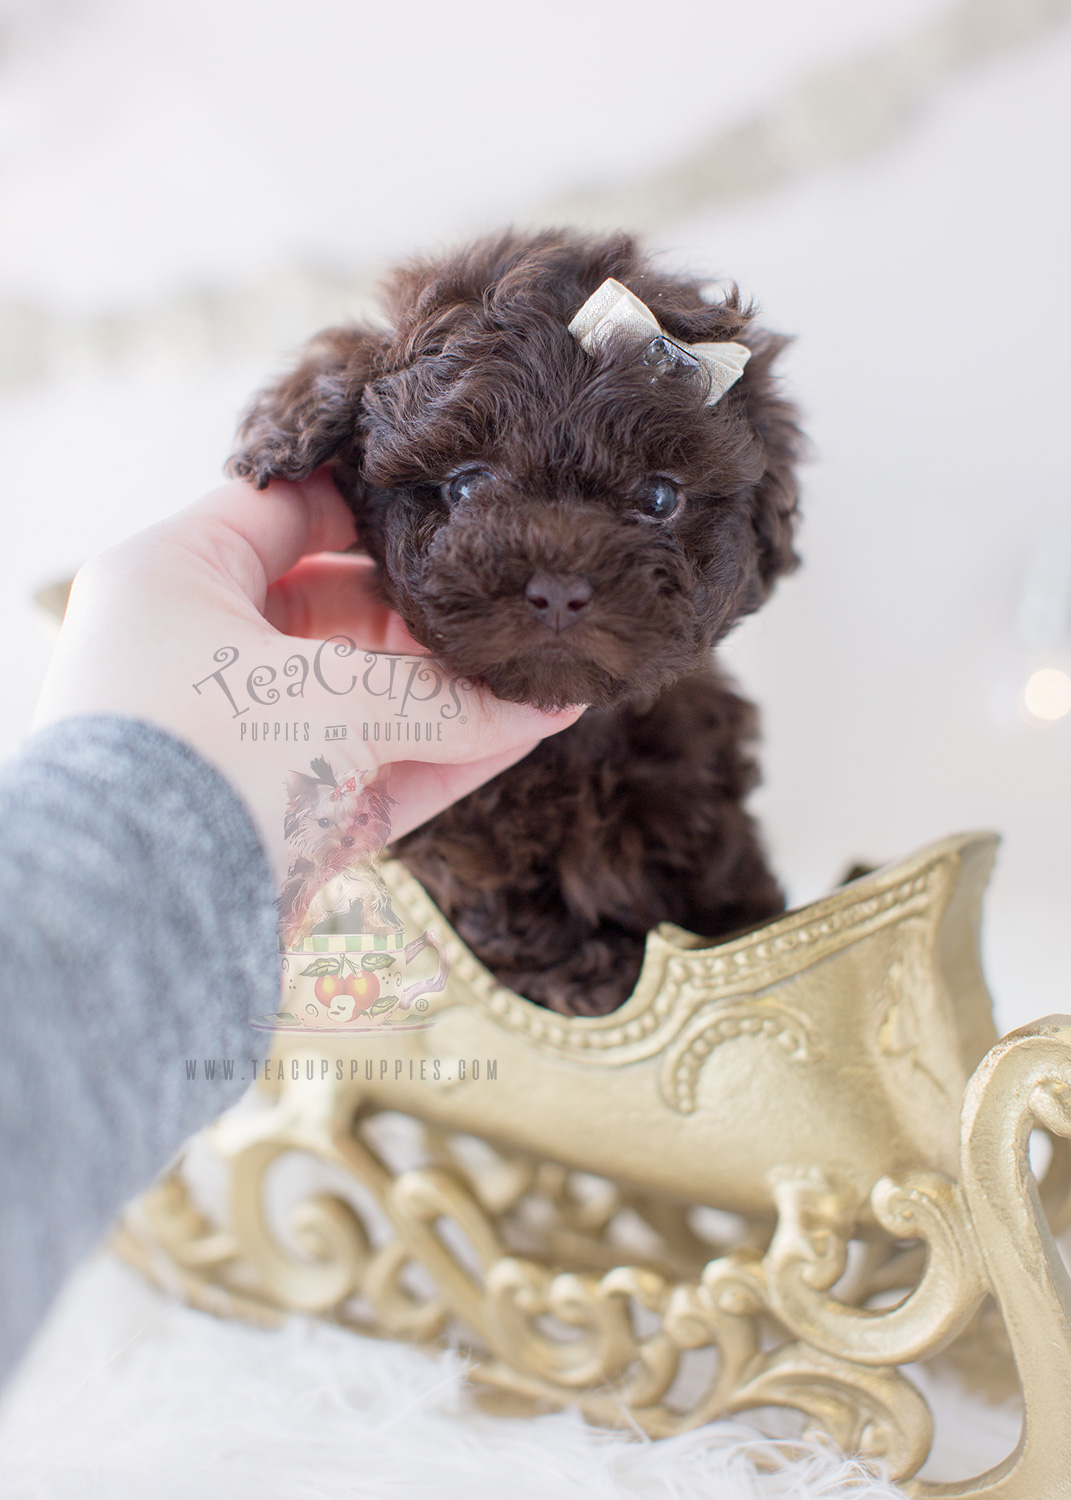 Chocolate Poodle Puppy For Sale #292 Teacup Puppies